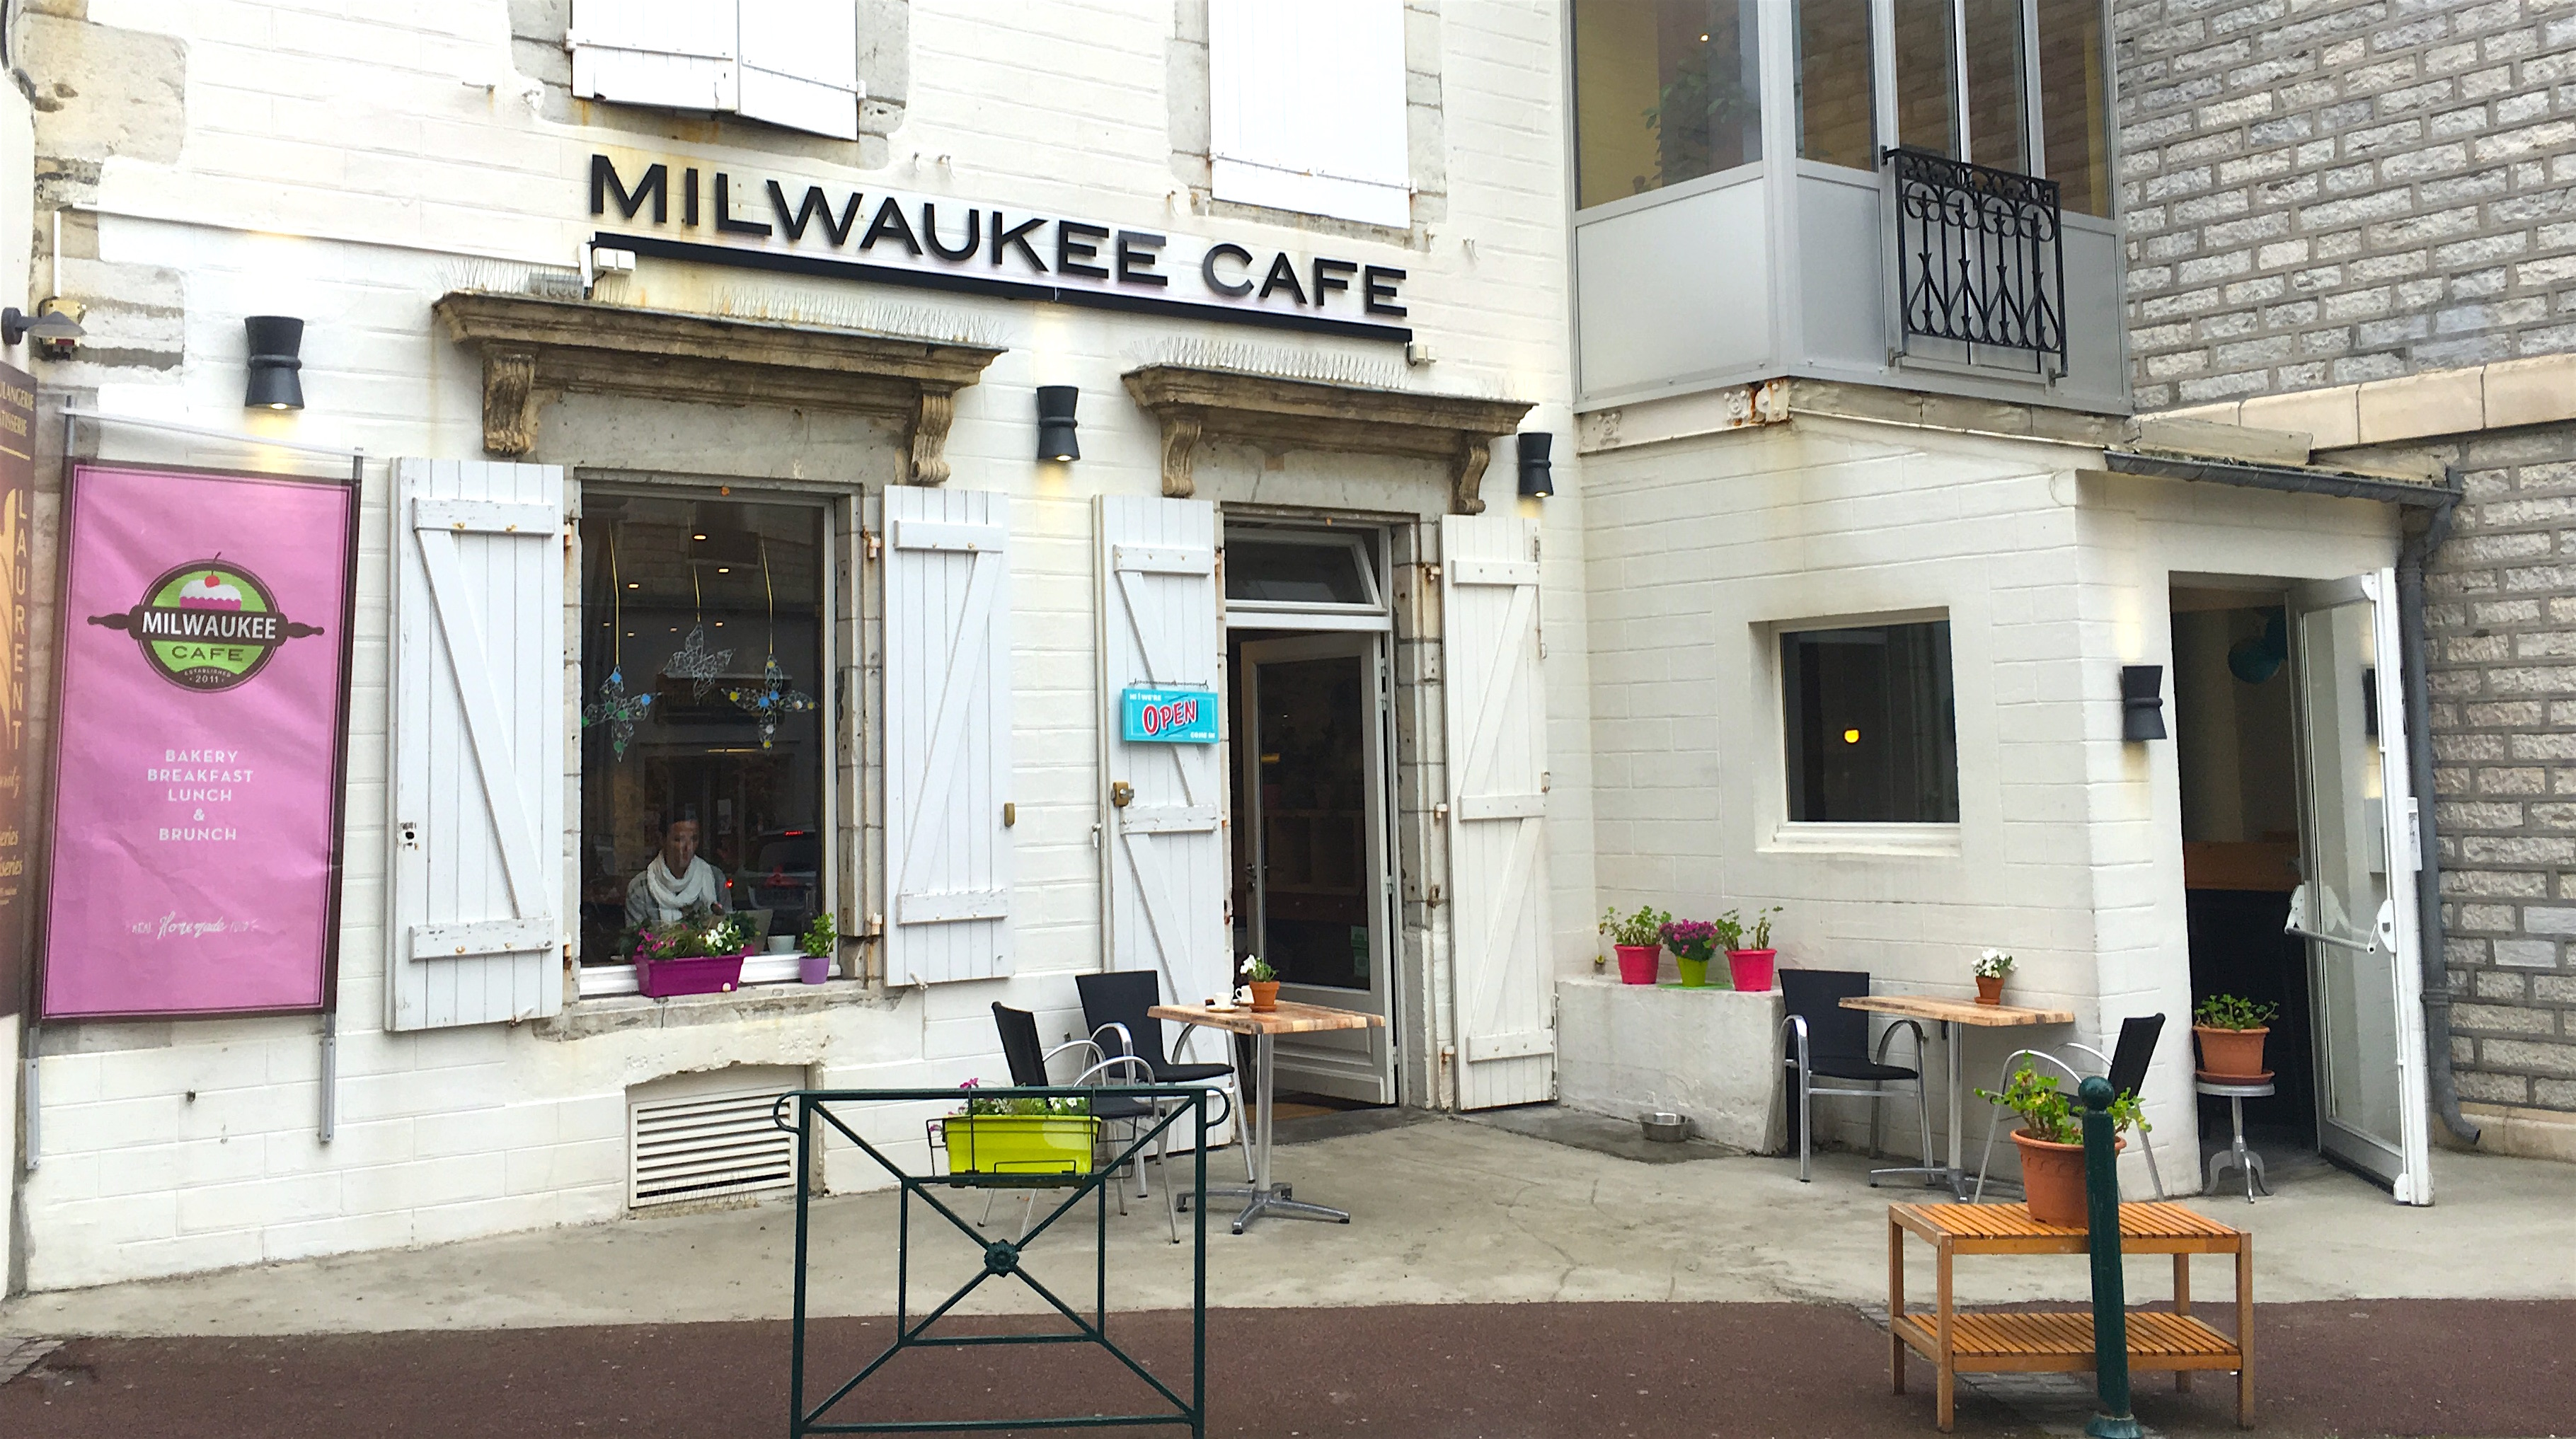 Milwaukee café